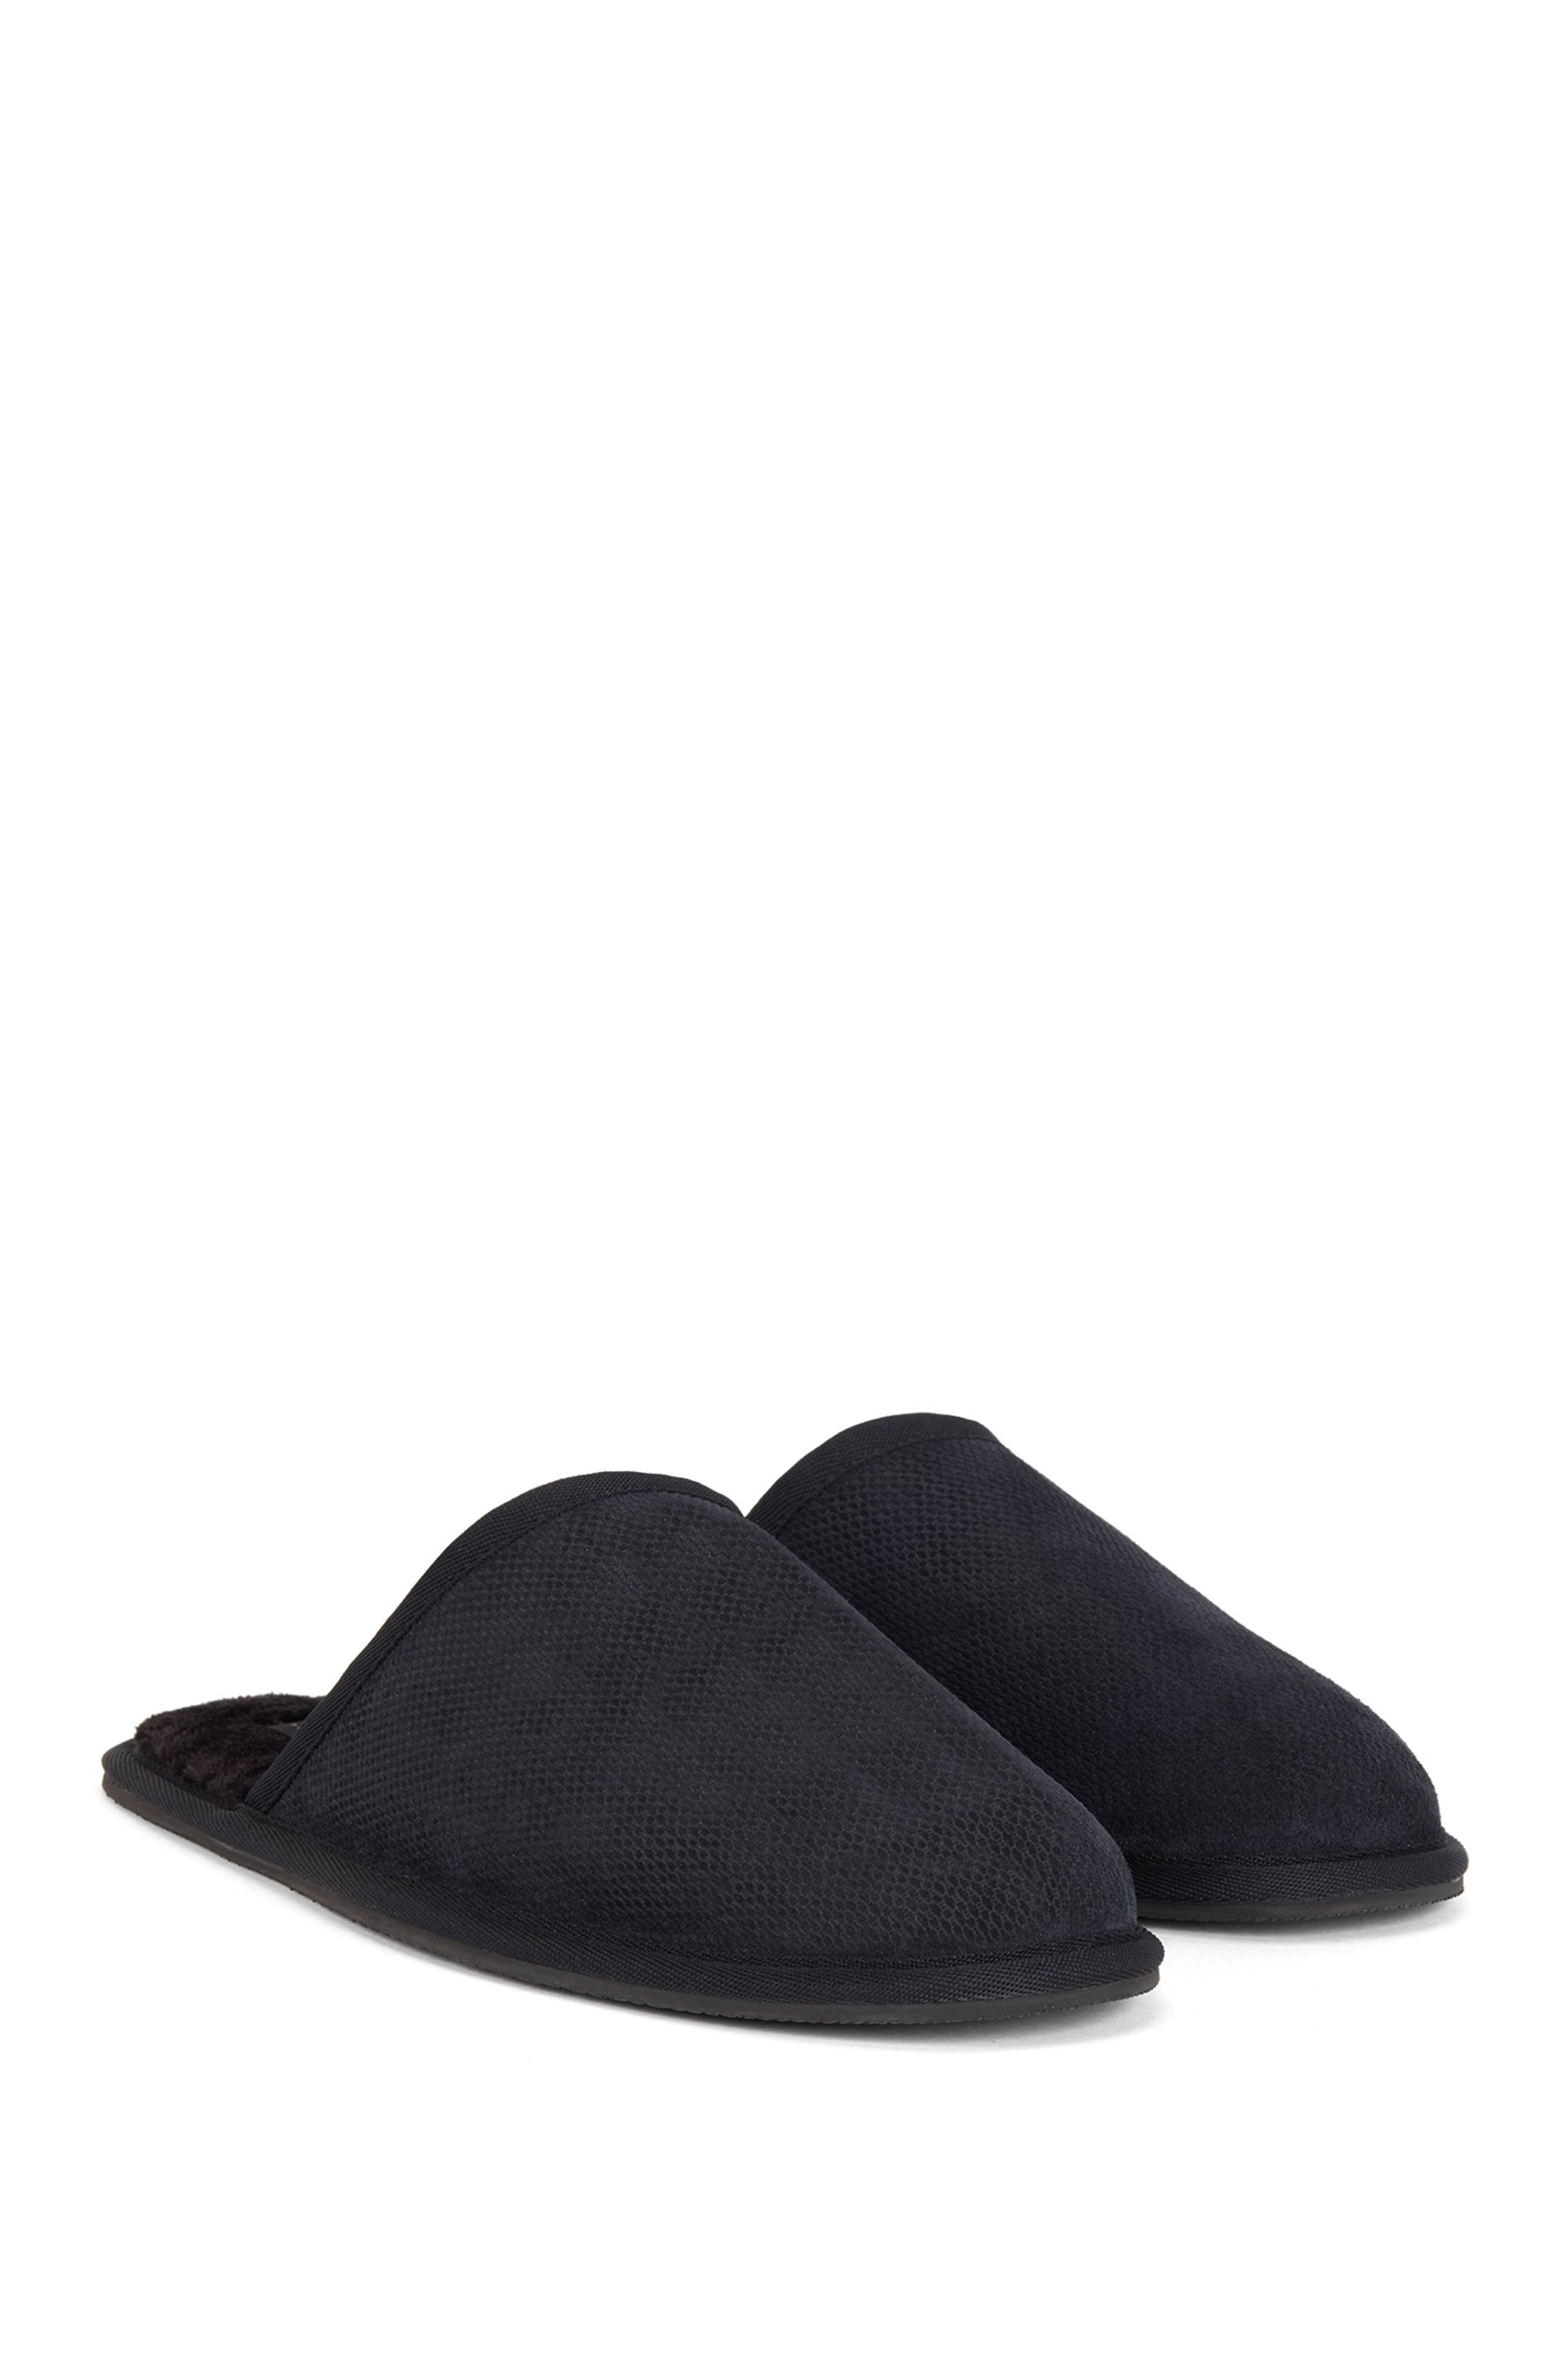 Monogrammed slippers in suede with faux-fur lining